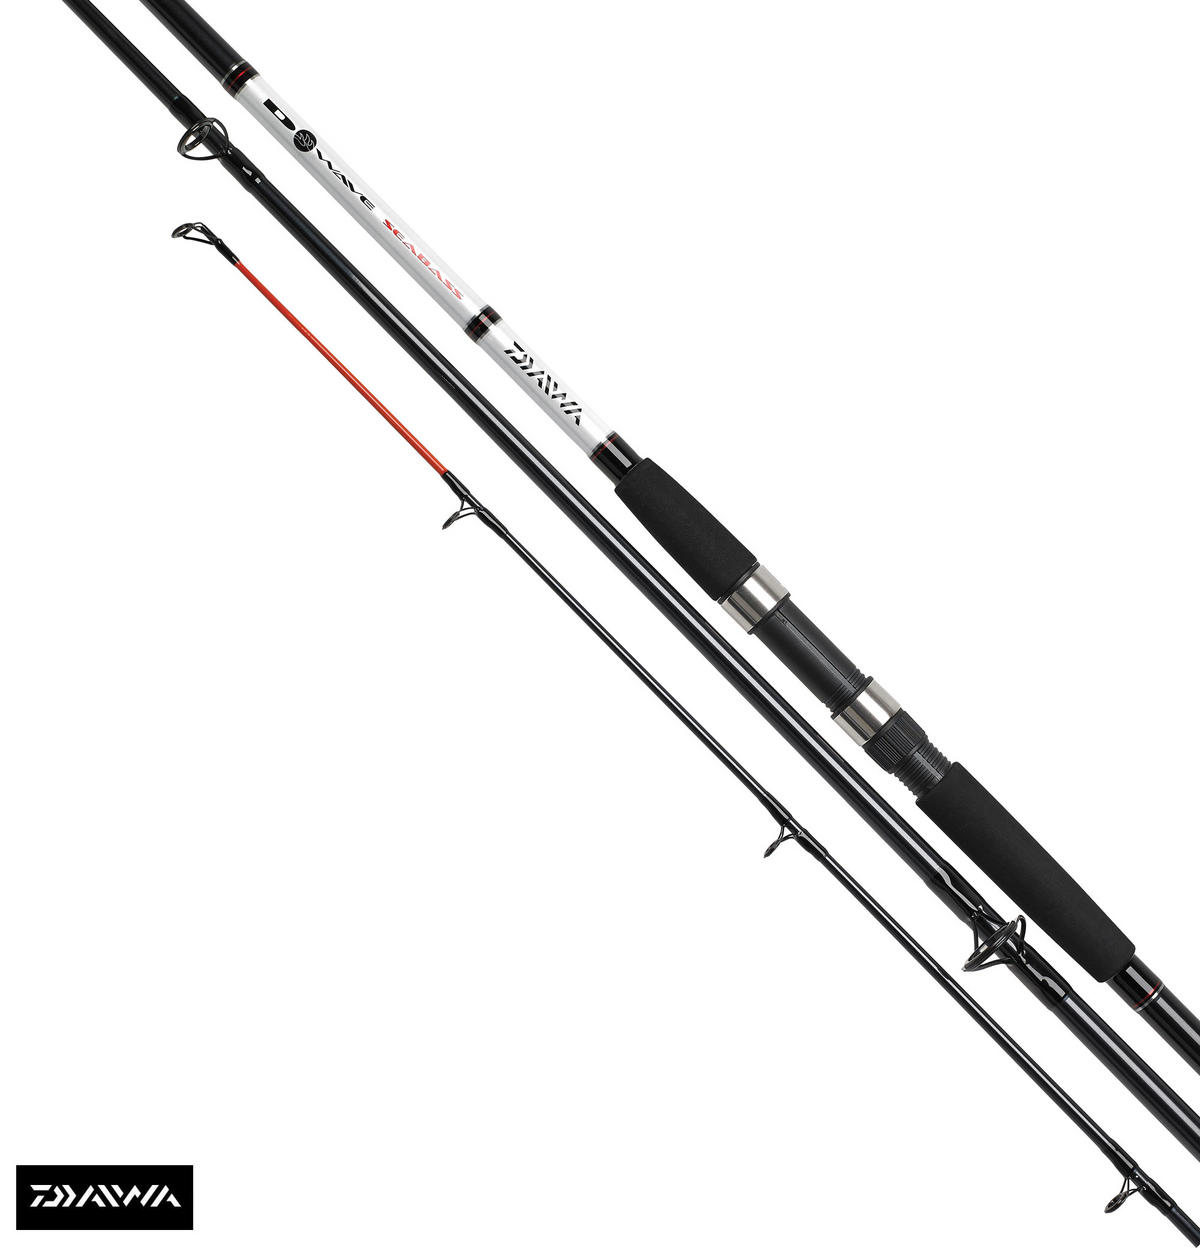 New Daiwa D Wave Seabass 11ft 3pc 2-4oz Fishing Rod Model No. DWSB1103-AU